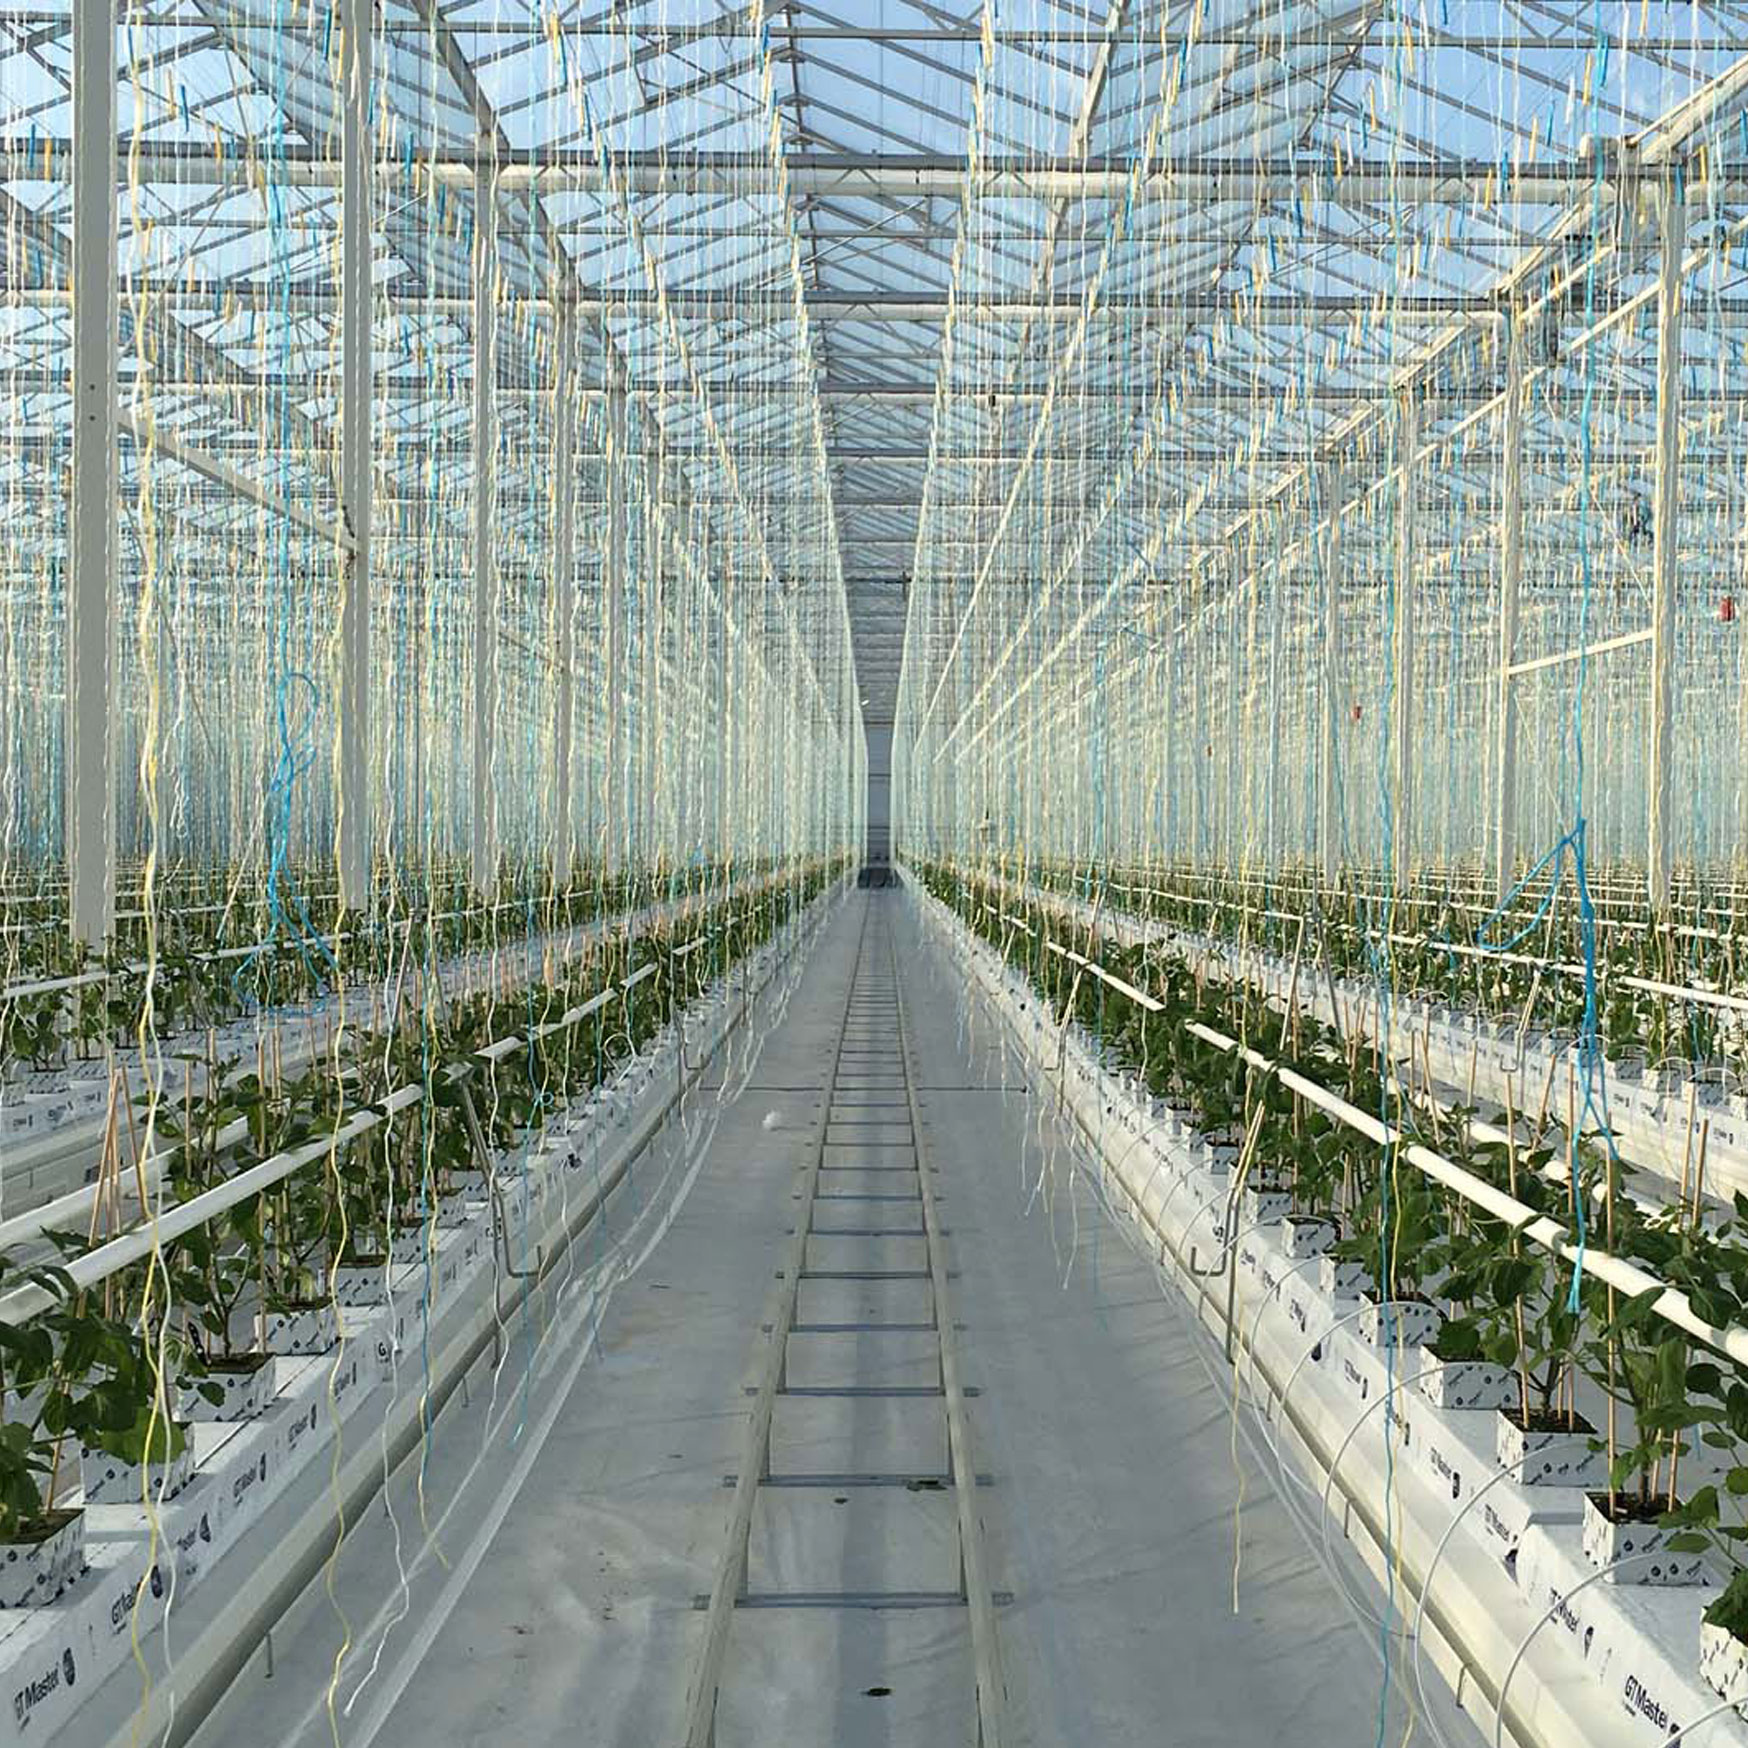 Thanet Earth, commercial hydroponics, factory farming